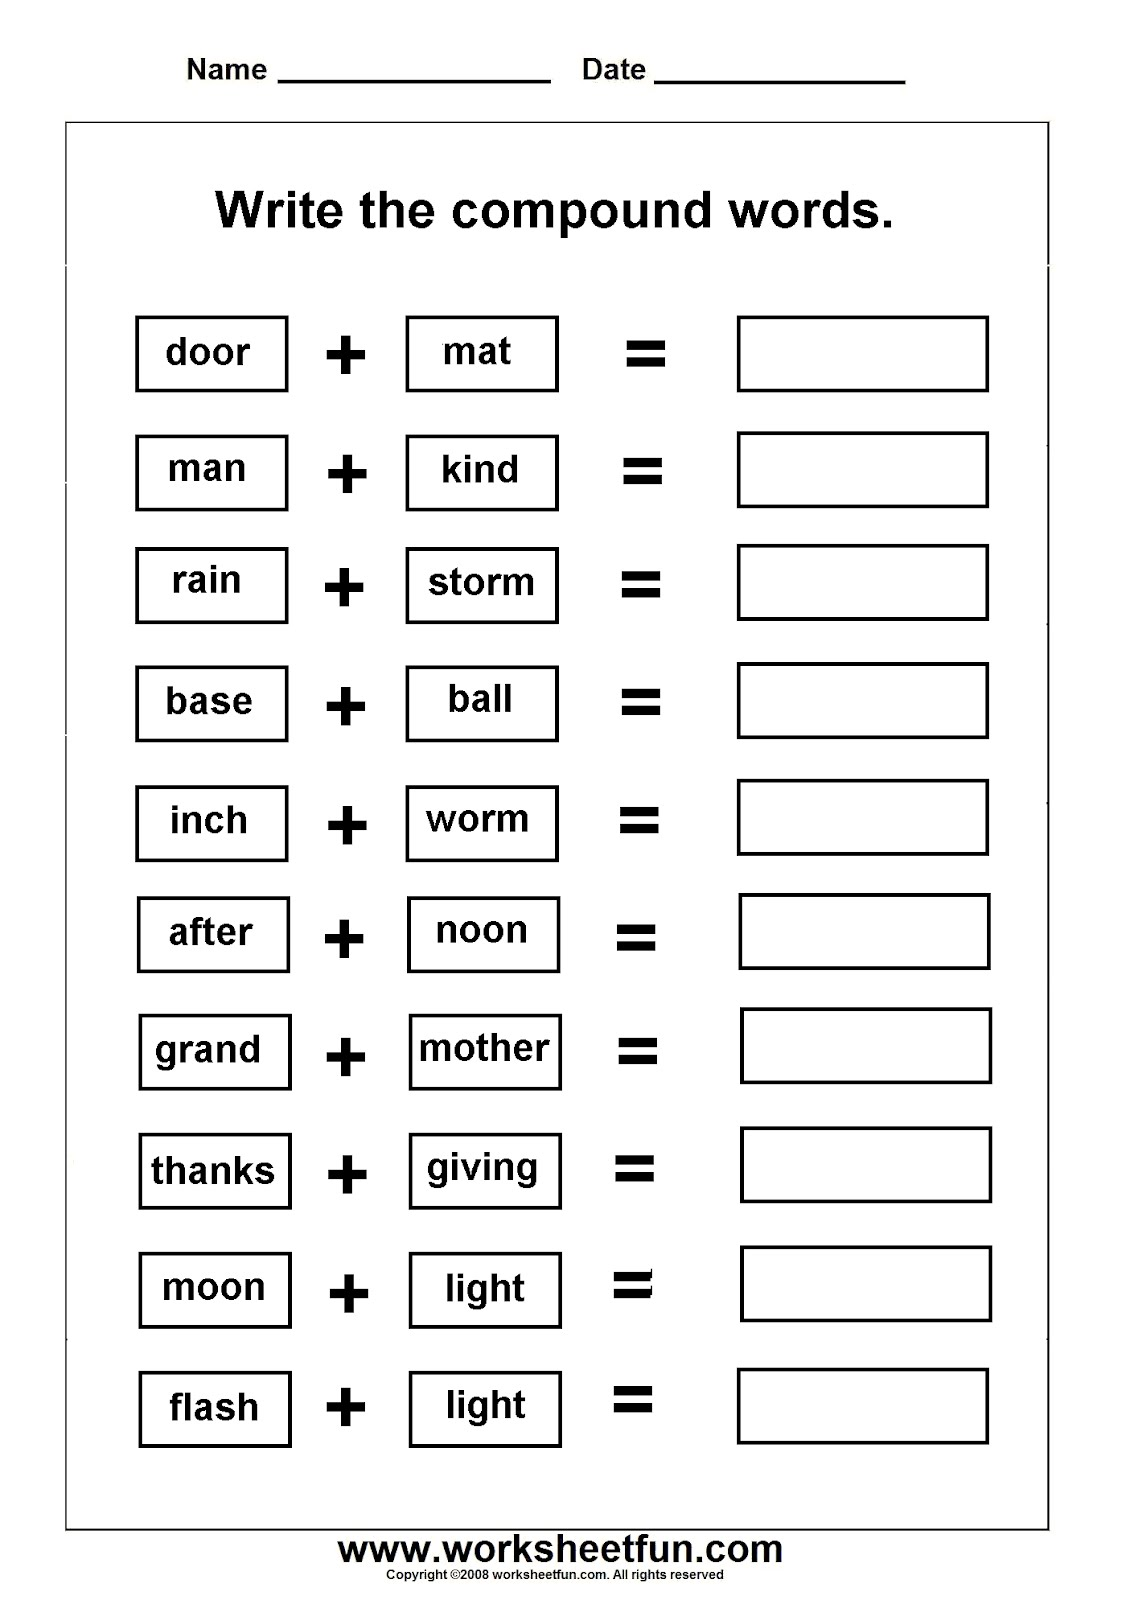 Worksheets On Compound Words With Pictures